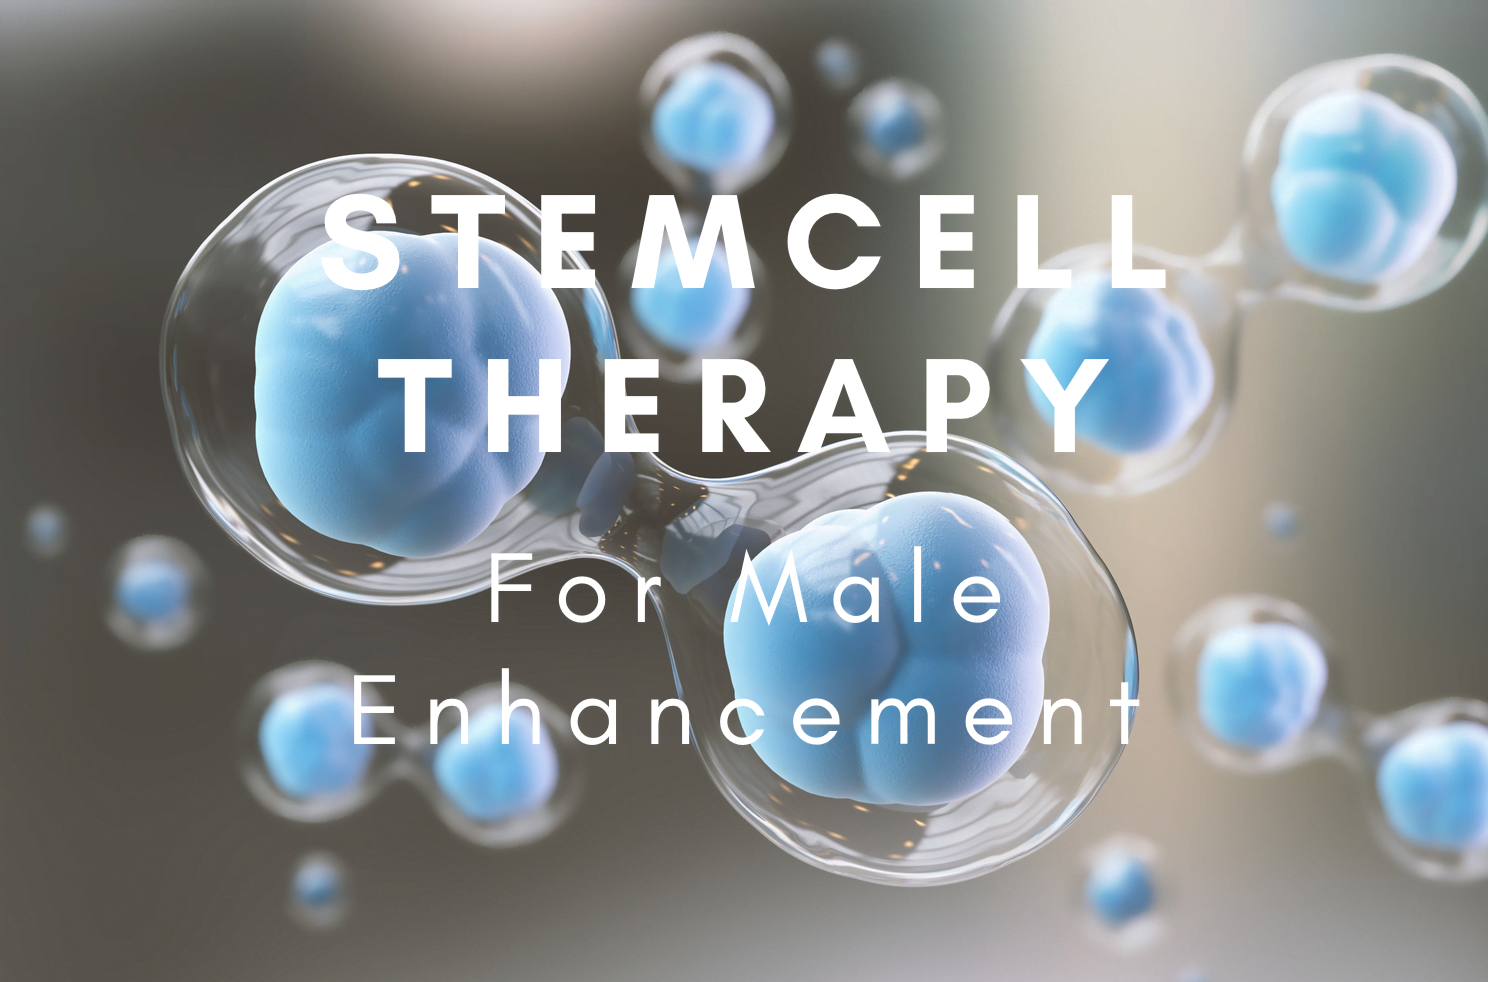 Stem Cells for Male Enhancement